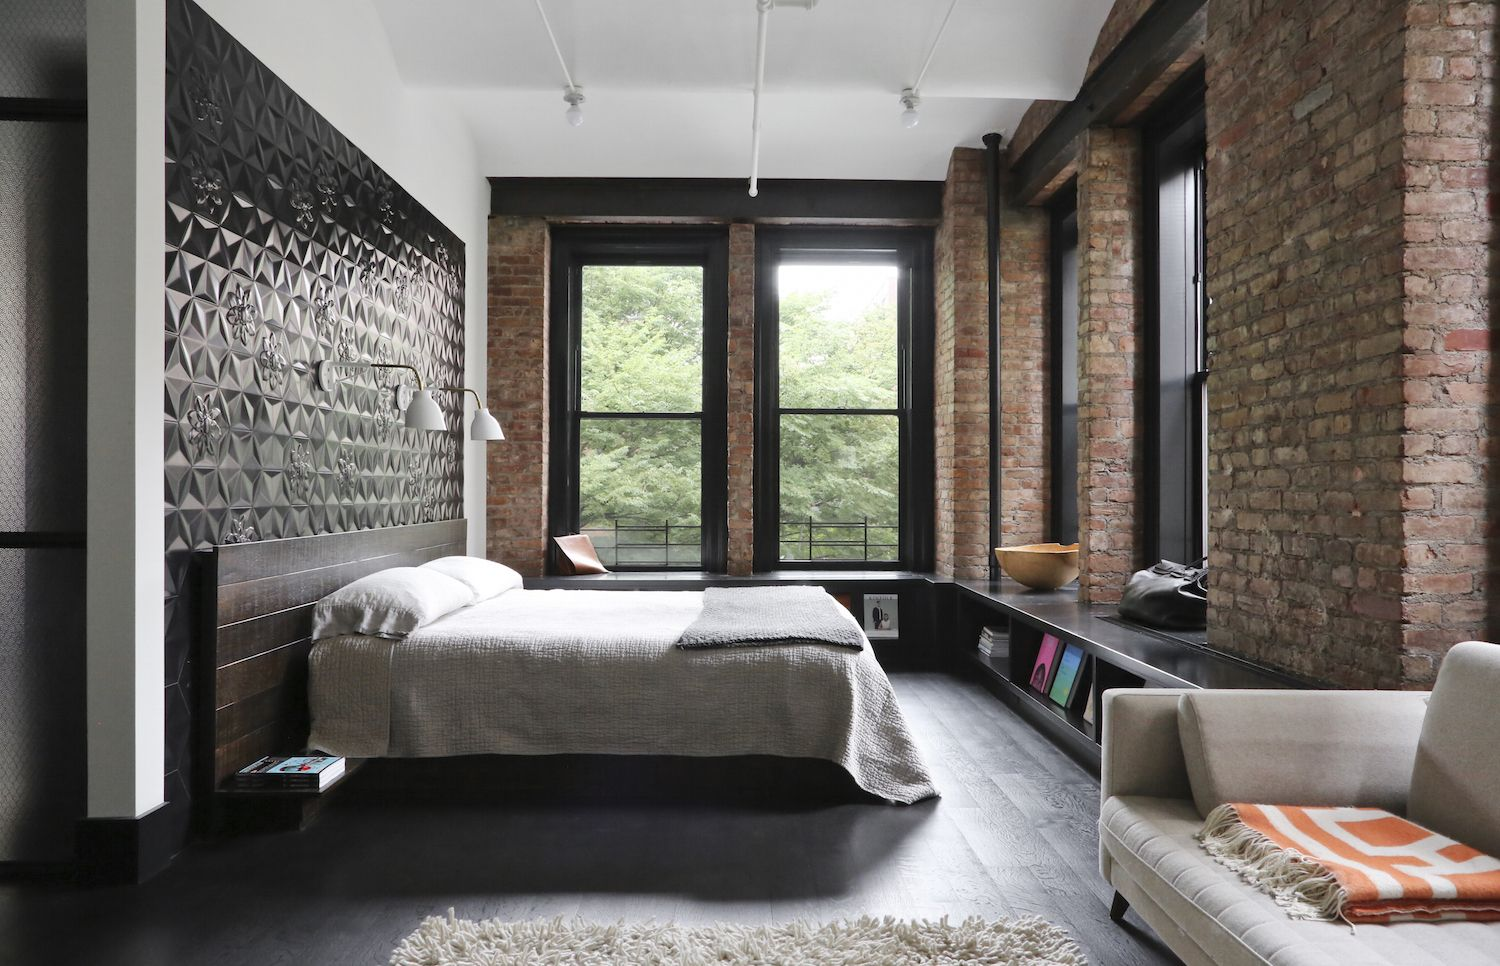 A Rugged Rustic Nyc Loft By Matt Bear Of Union Studio With